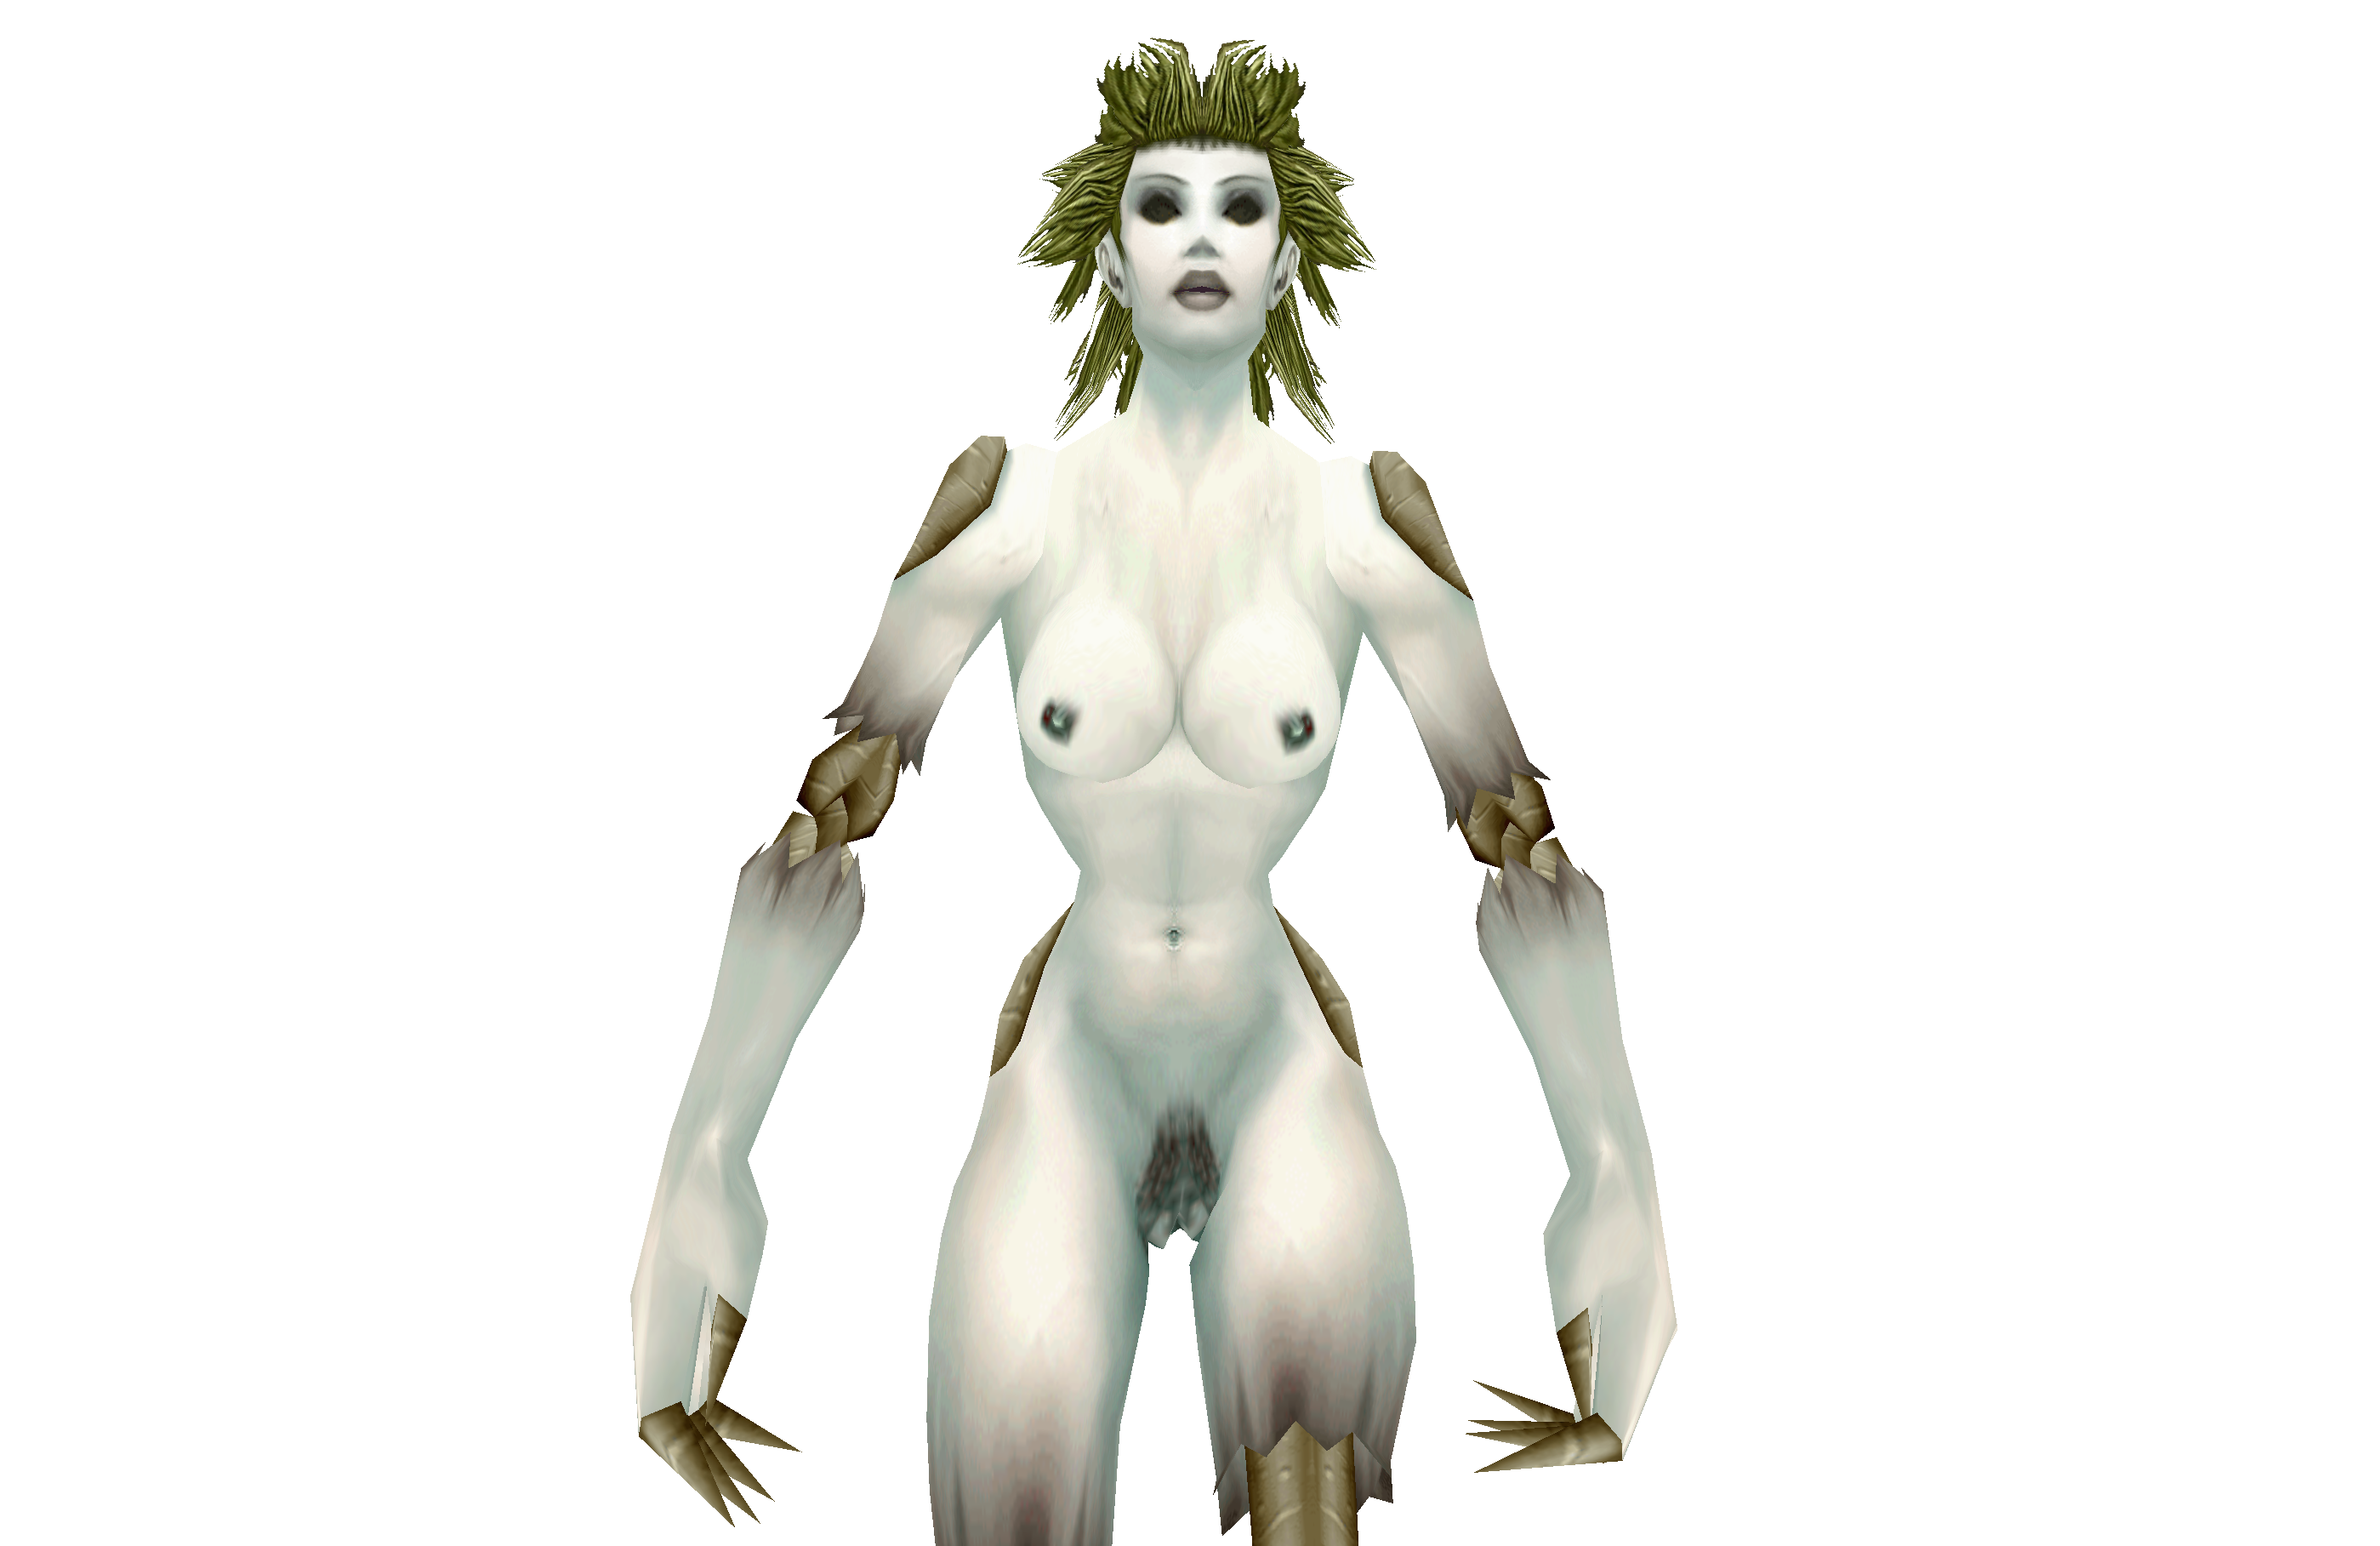 Warcraft nude skins having sex smut image